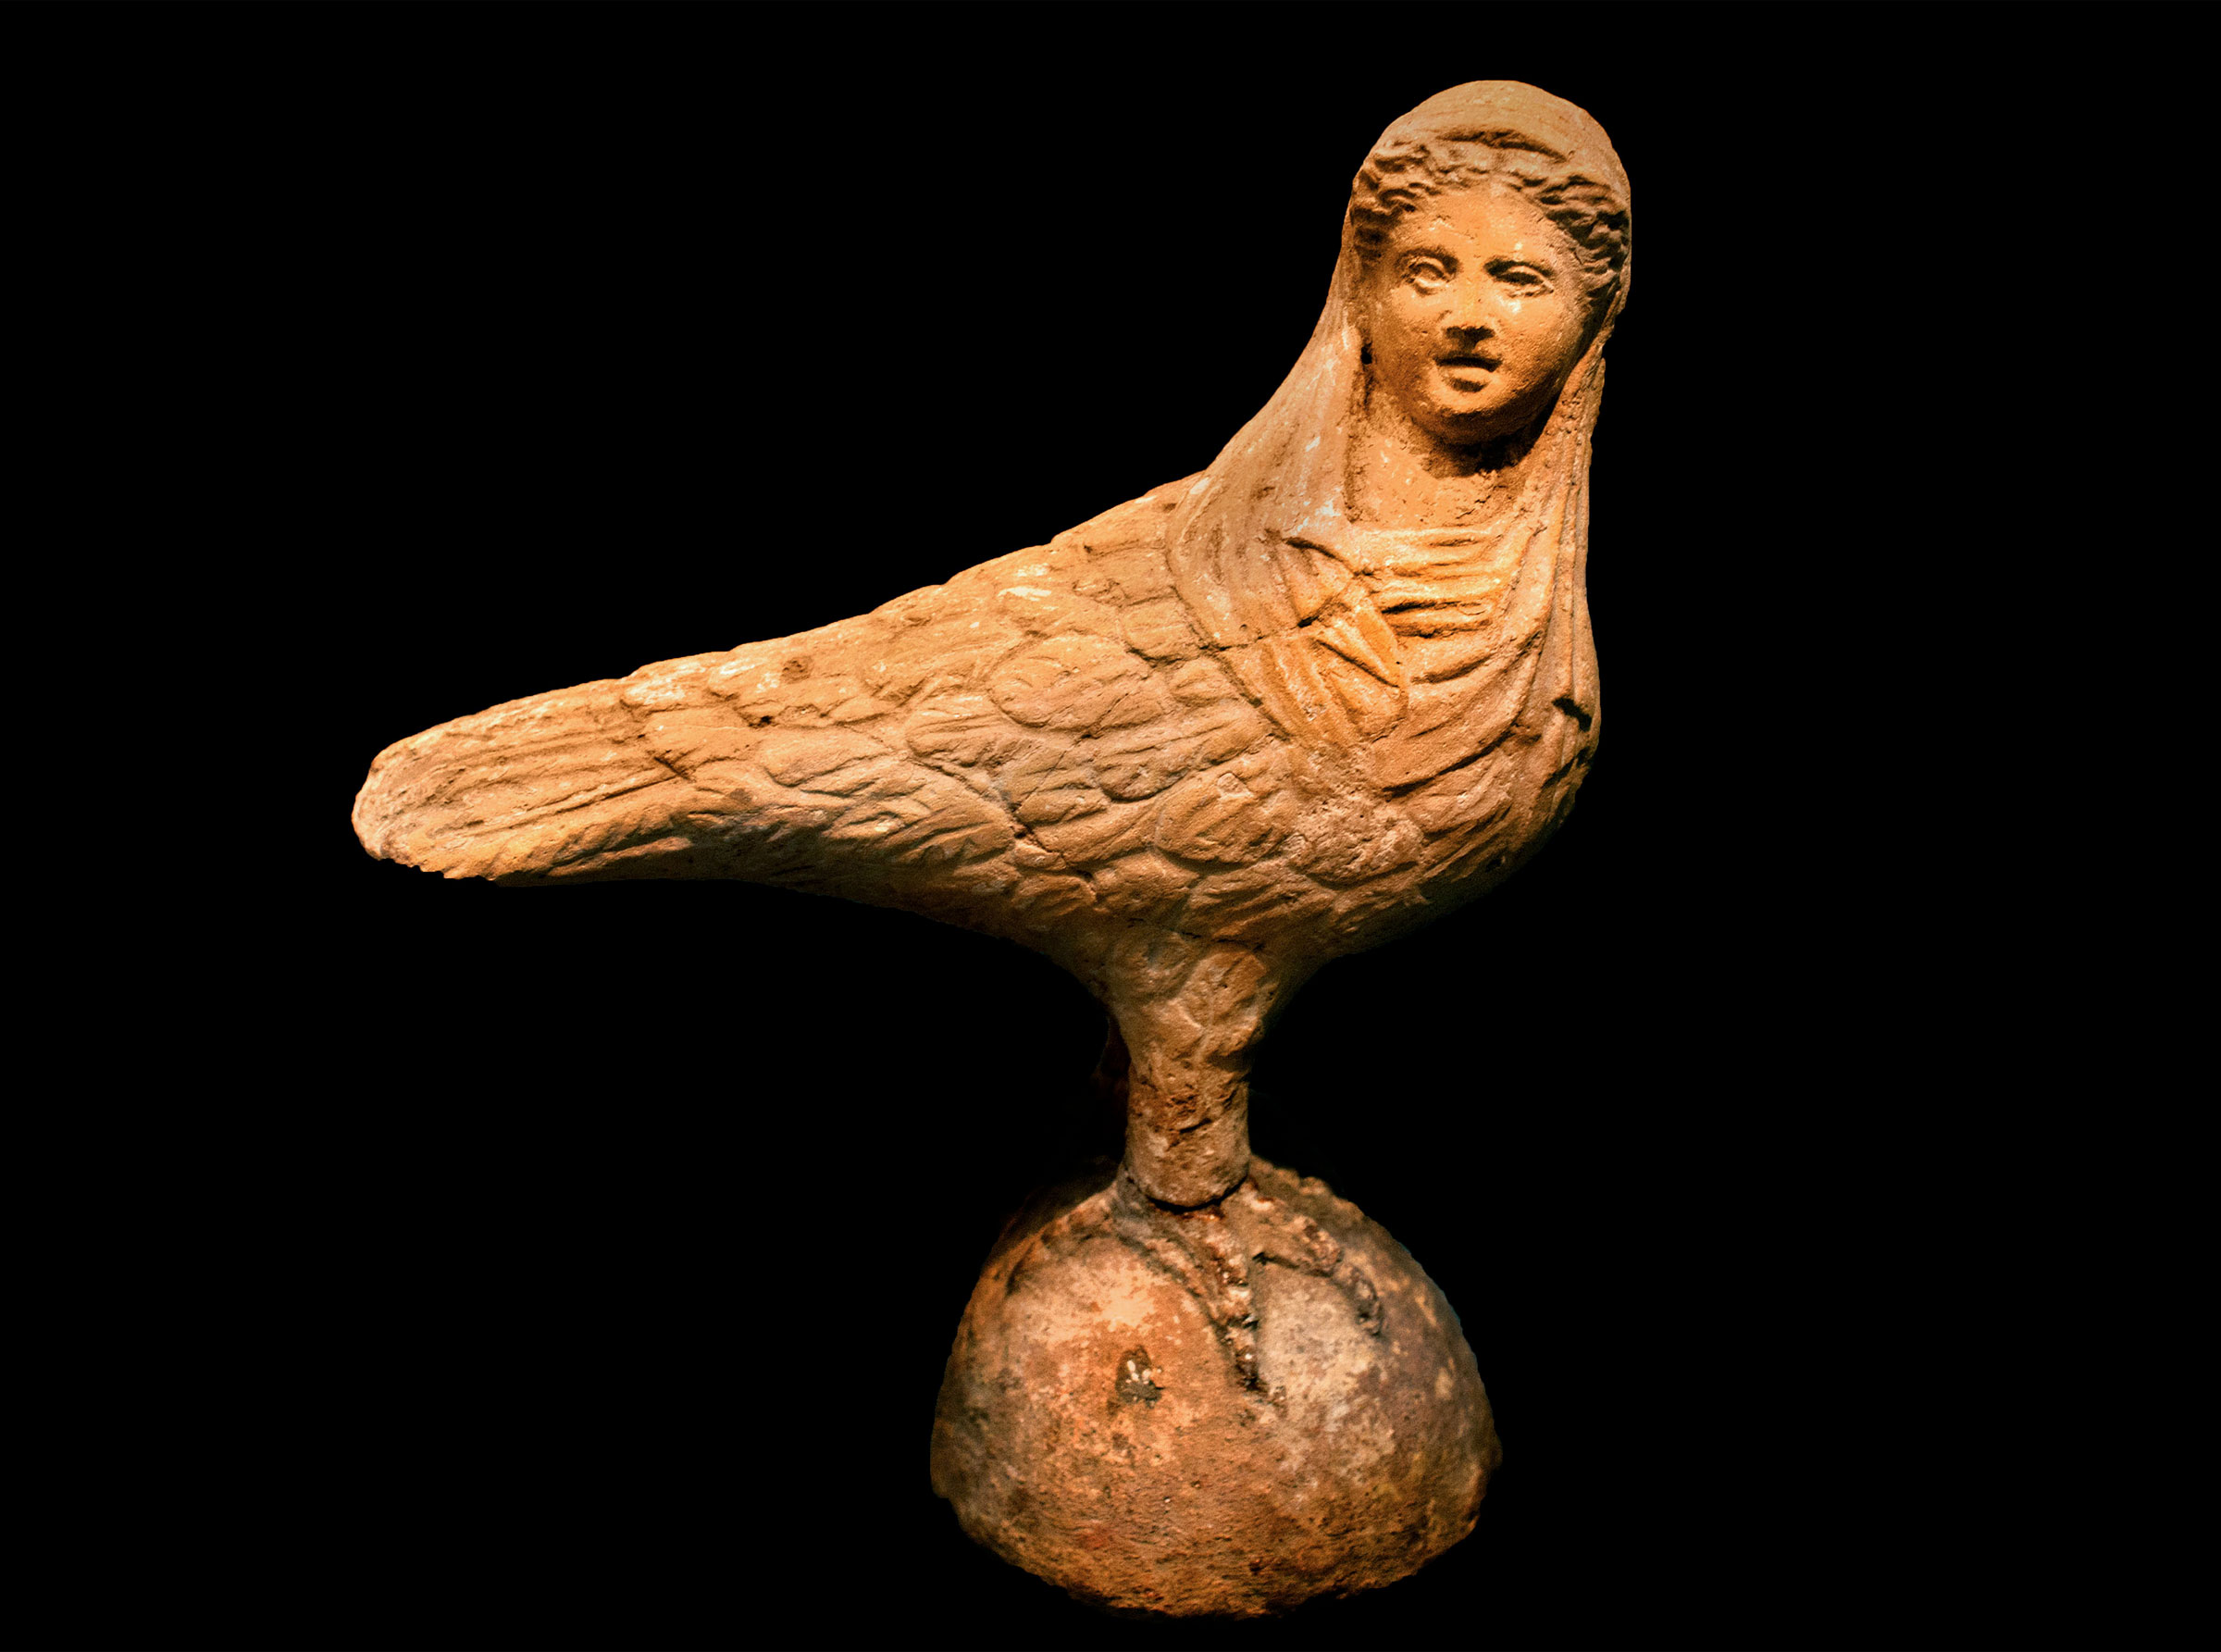 No mermaids here: A terracotta Siren from Greece, 300 BCE, shows the creatures in their original, bird-woman form. Peter Horree/Alamy